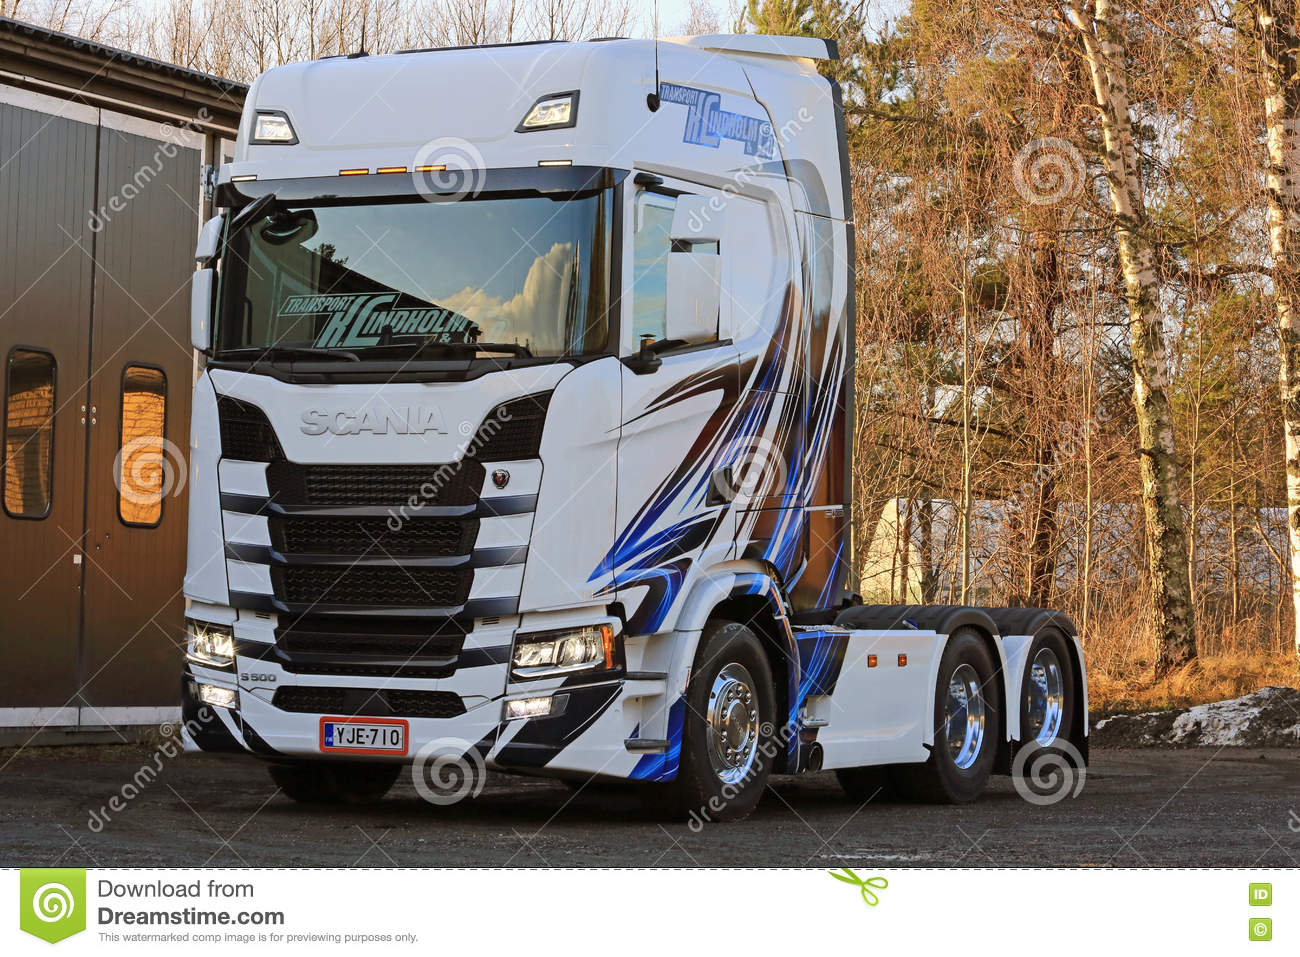 Free Rc Plans New Scania S500 Truck In Finland Editorial Photography